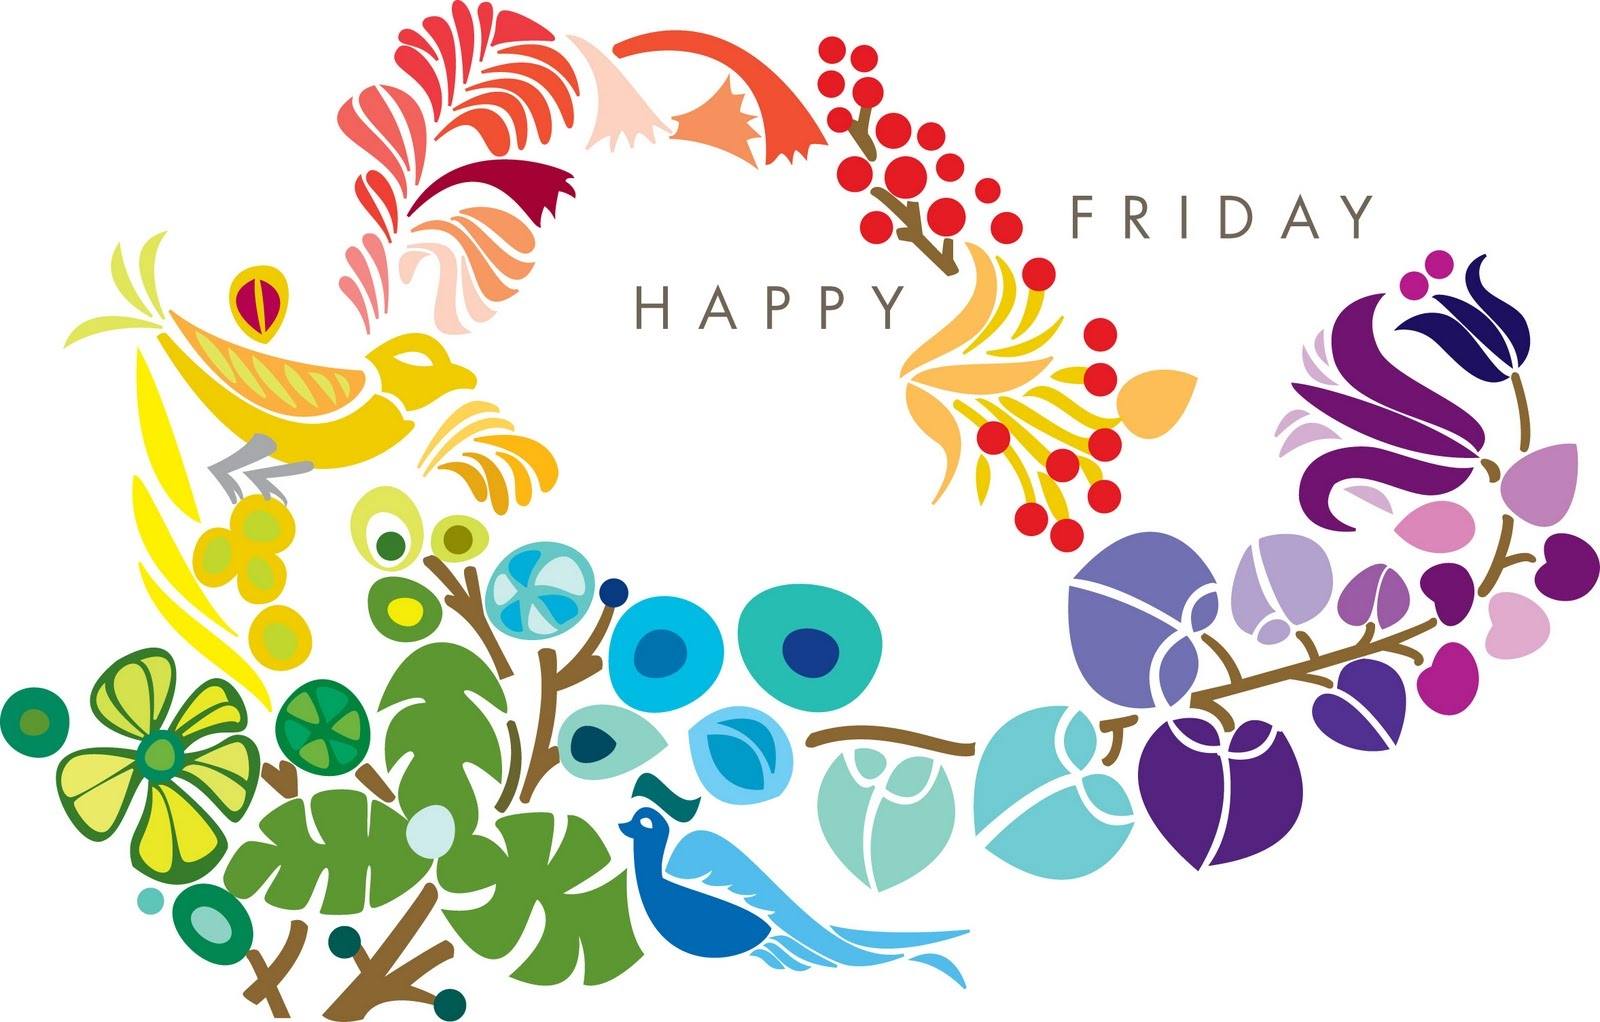 Friday clipart. Unique good gallery digital